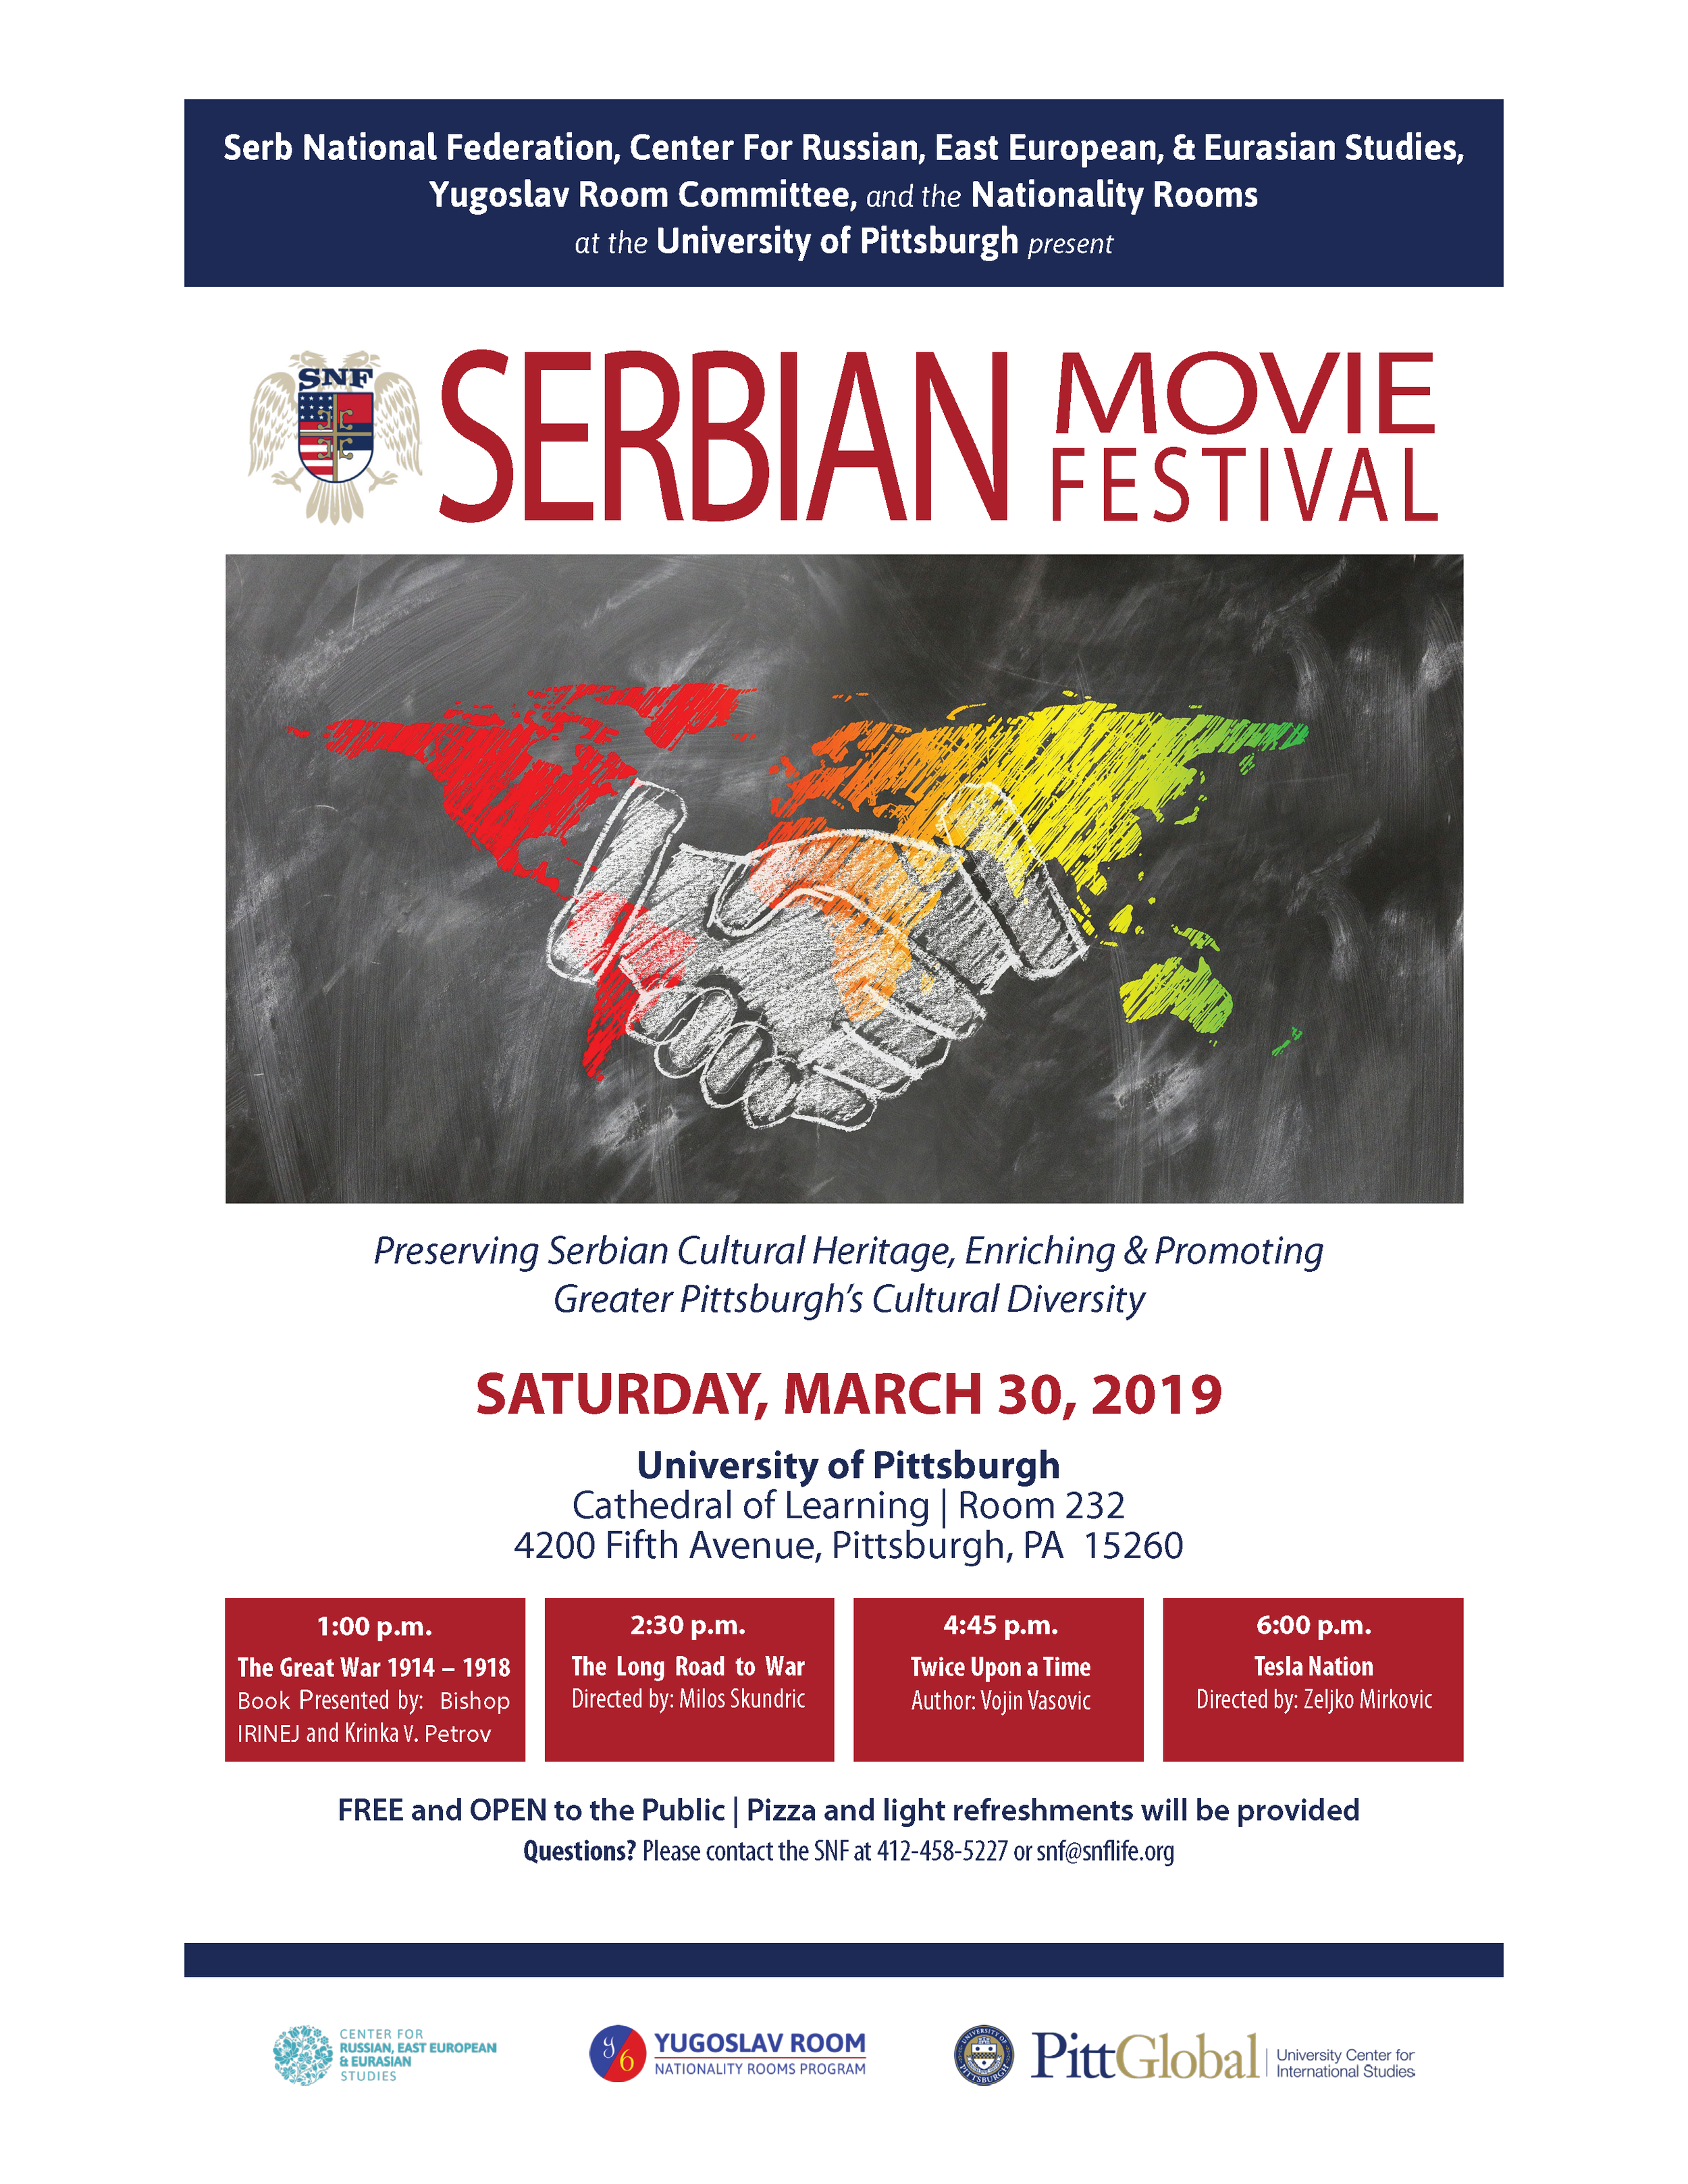 Serbian Movie Festival Program 2019 NEW_Page_1.png